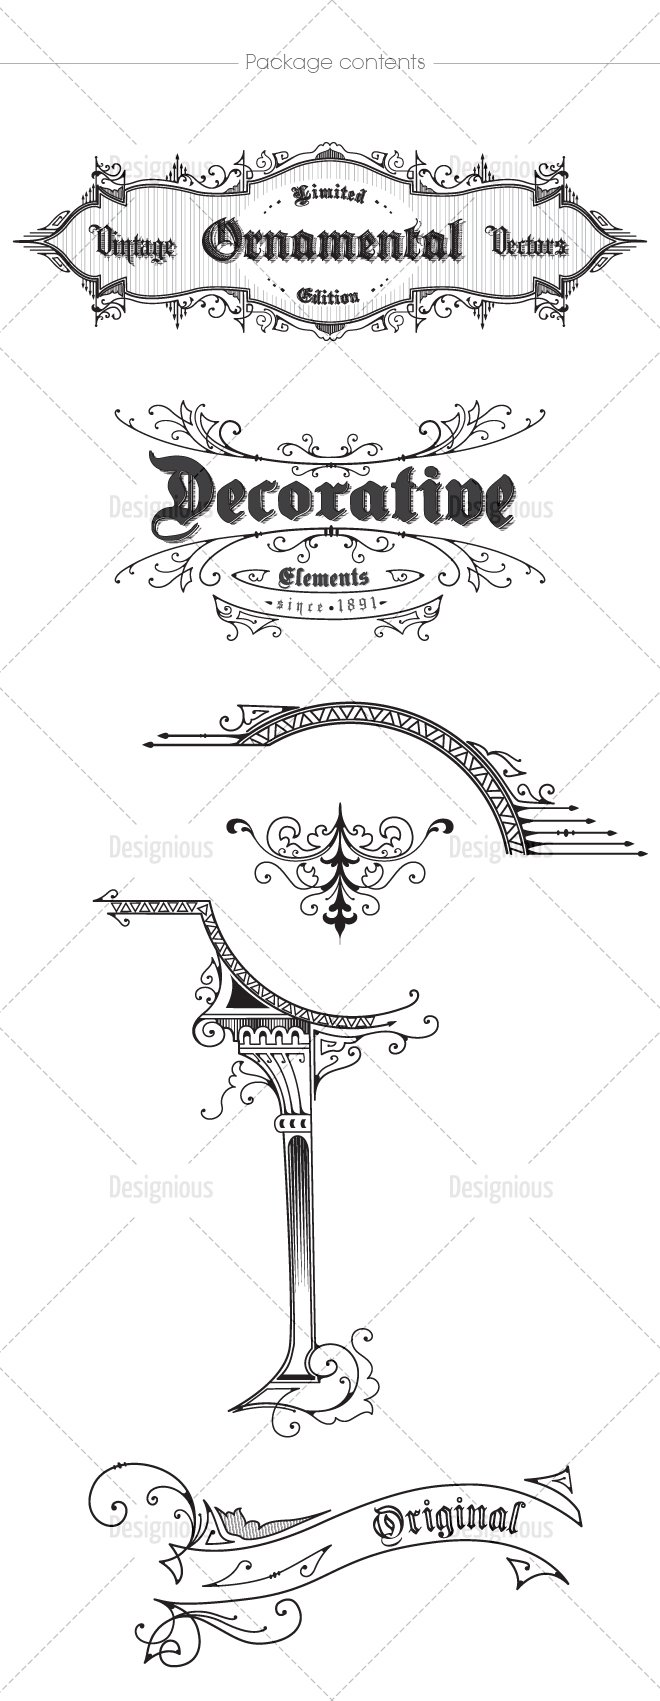 Get 600+ Vector Calligraphic Ornaments & Page Decorations